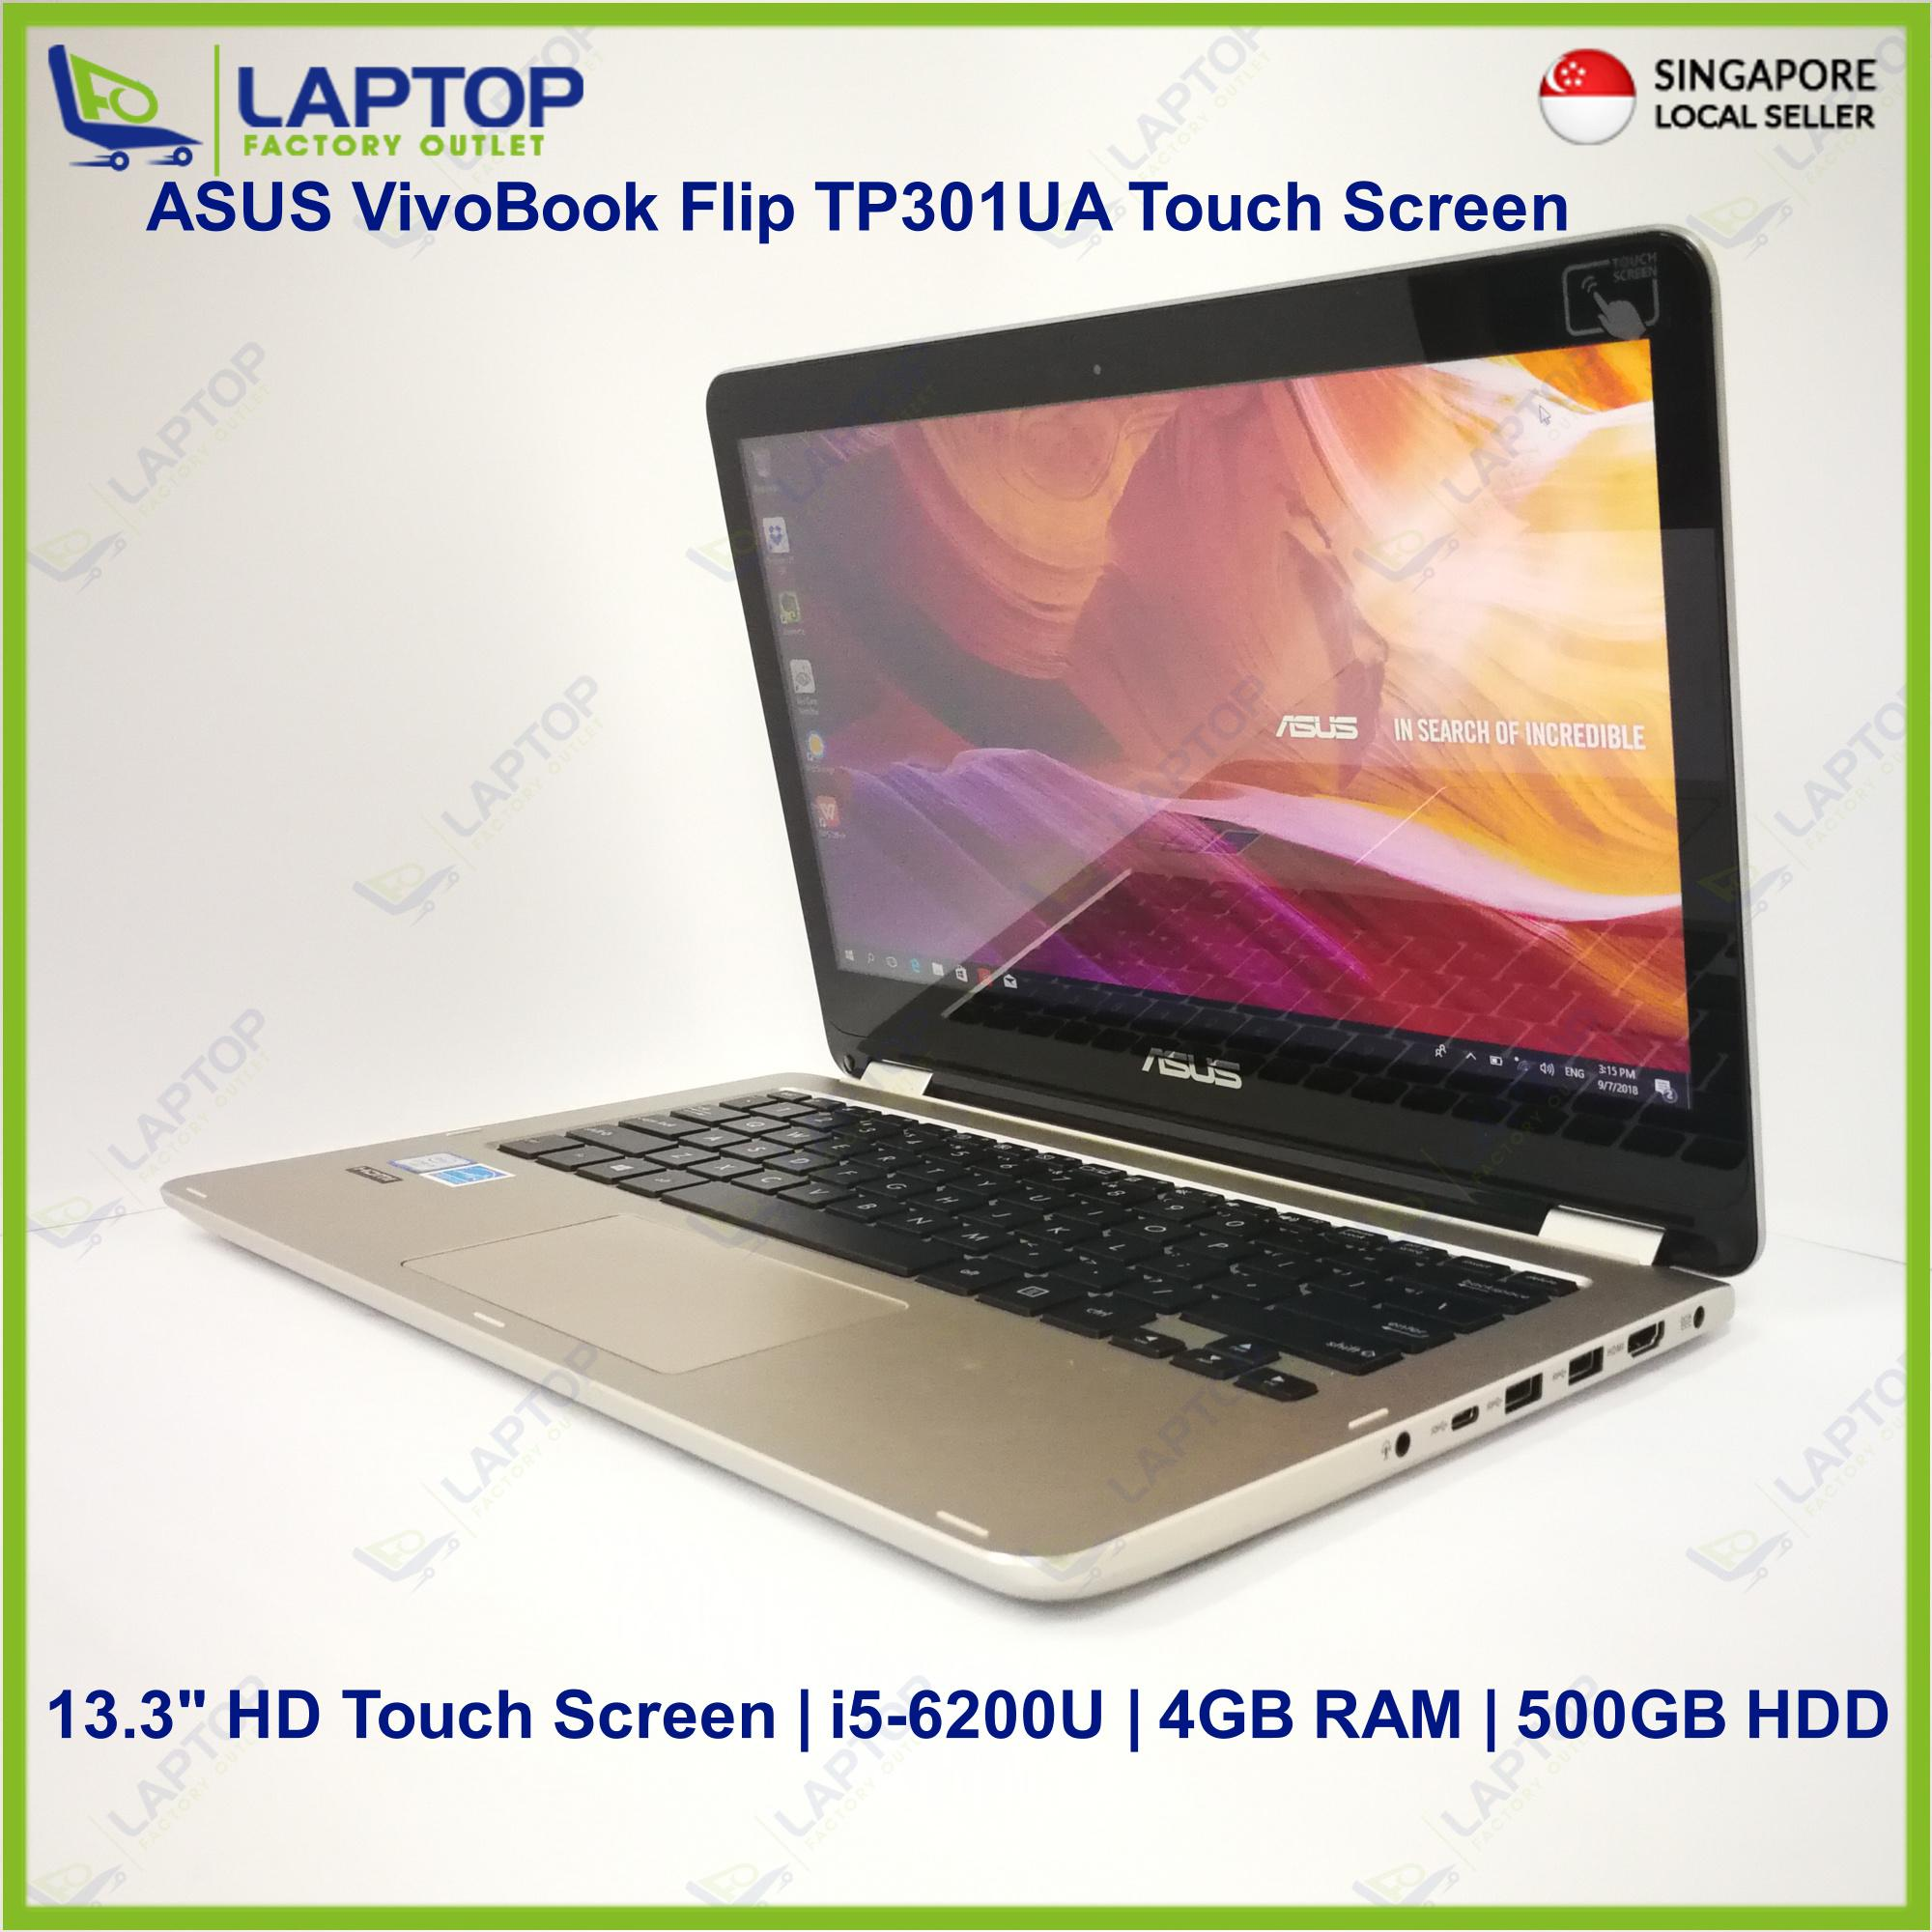 ASUS VivoBook Flip TP301UA Touch Screen (i5-6/4GB/500GB) Premium Preowned [Refurbished]